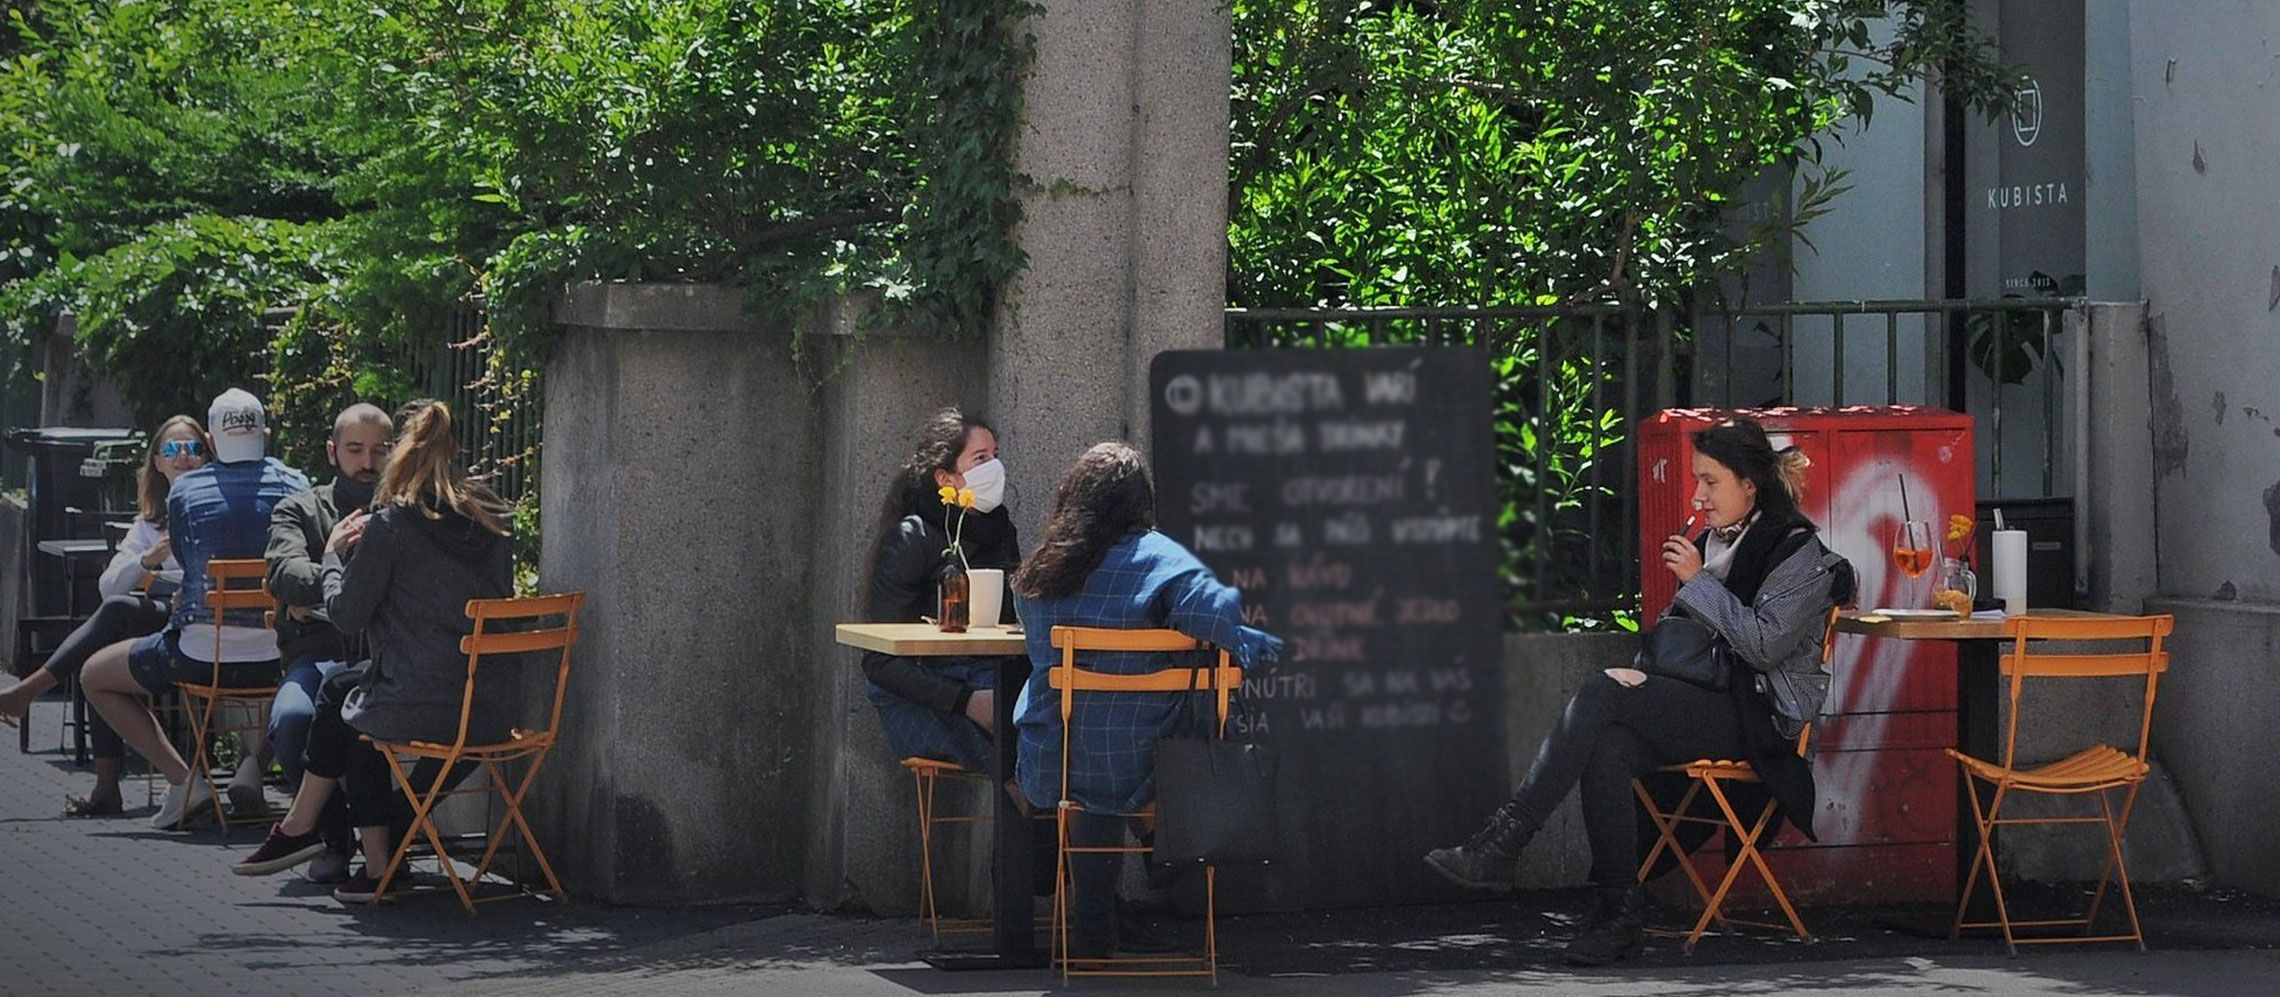 Photo for: What Restaurant, Bars And Pubs Are Doing Differently Than Before Lockdown